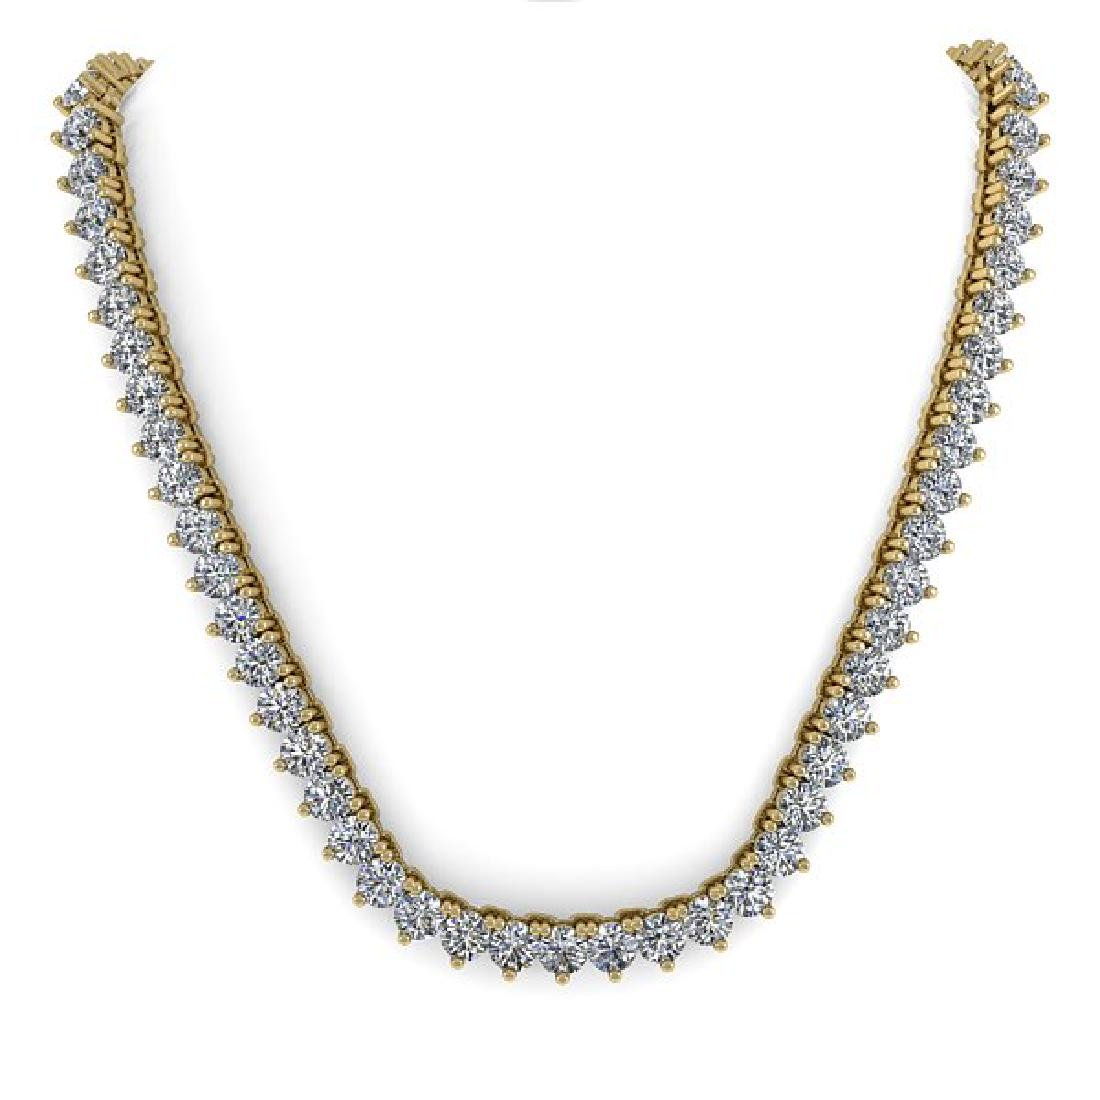 25 CTW Solitaire VS/SI Diamond Necklace 18K Yellow Gold - 3